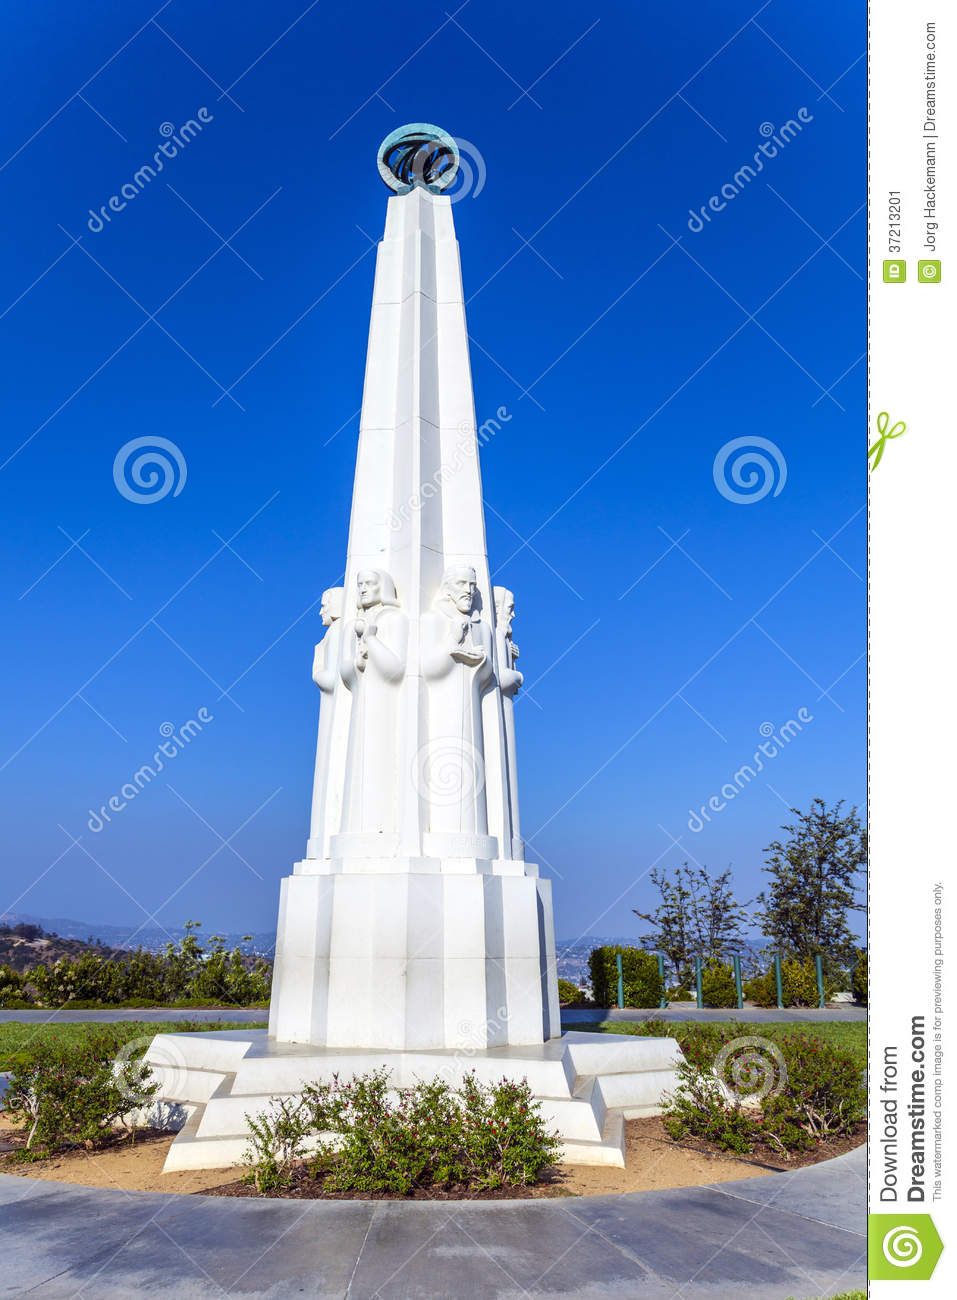 Astronomenmonument bei Griffith Observatory in Los Angeles